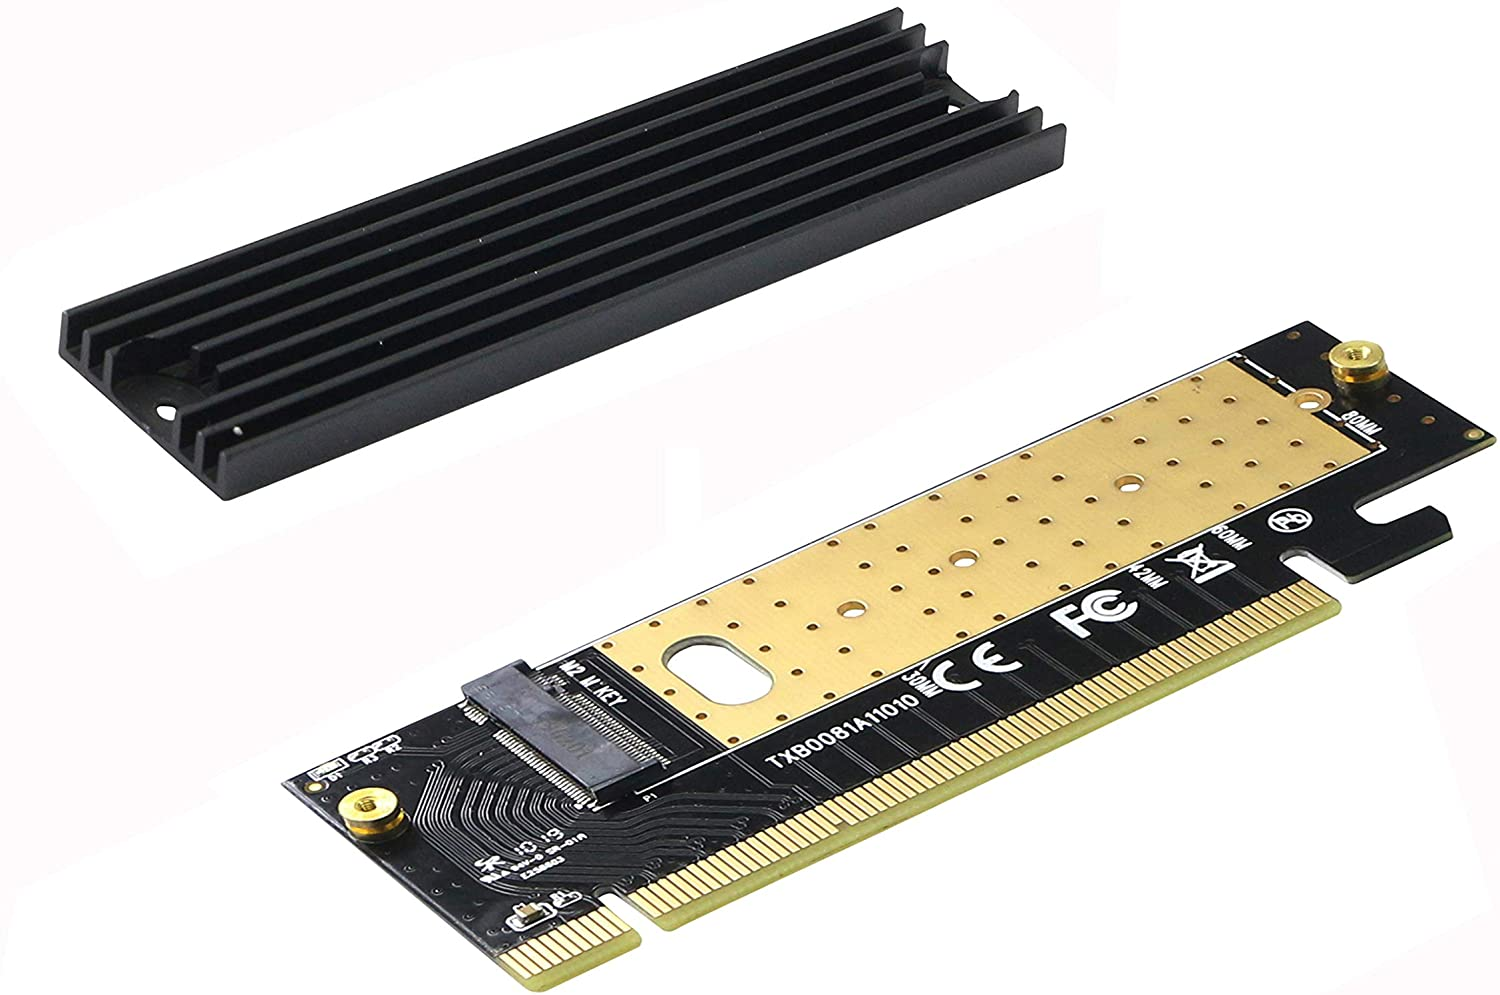 m.2 to pcie x16 adapter Card pci-e to m .2 convert adapter NVMe SSD Adaptor m2 M Key Interface PCI Express 3.0 x4 2230-2280 Size m 2 ngff pcie 4 lane ssd to pci e pcie 3 0 x4